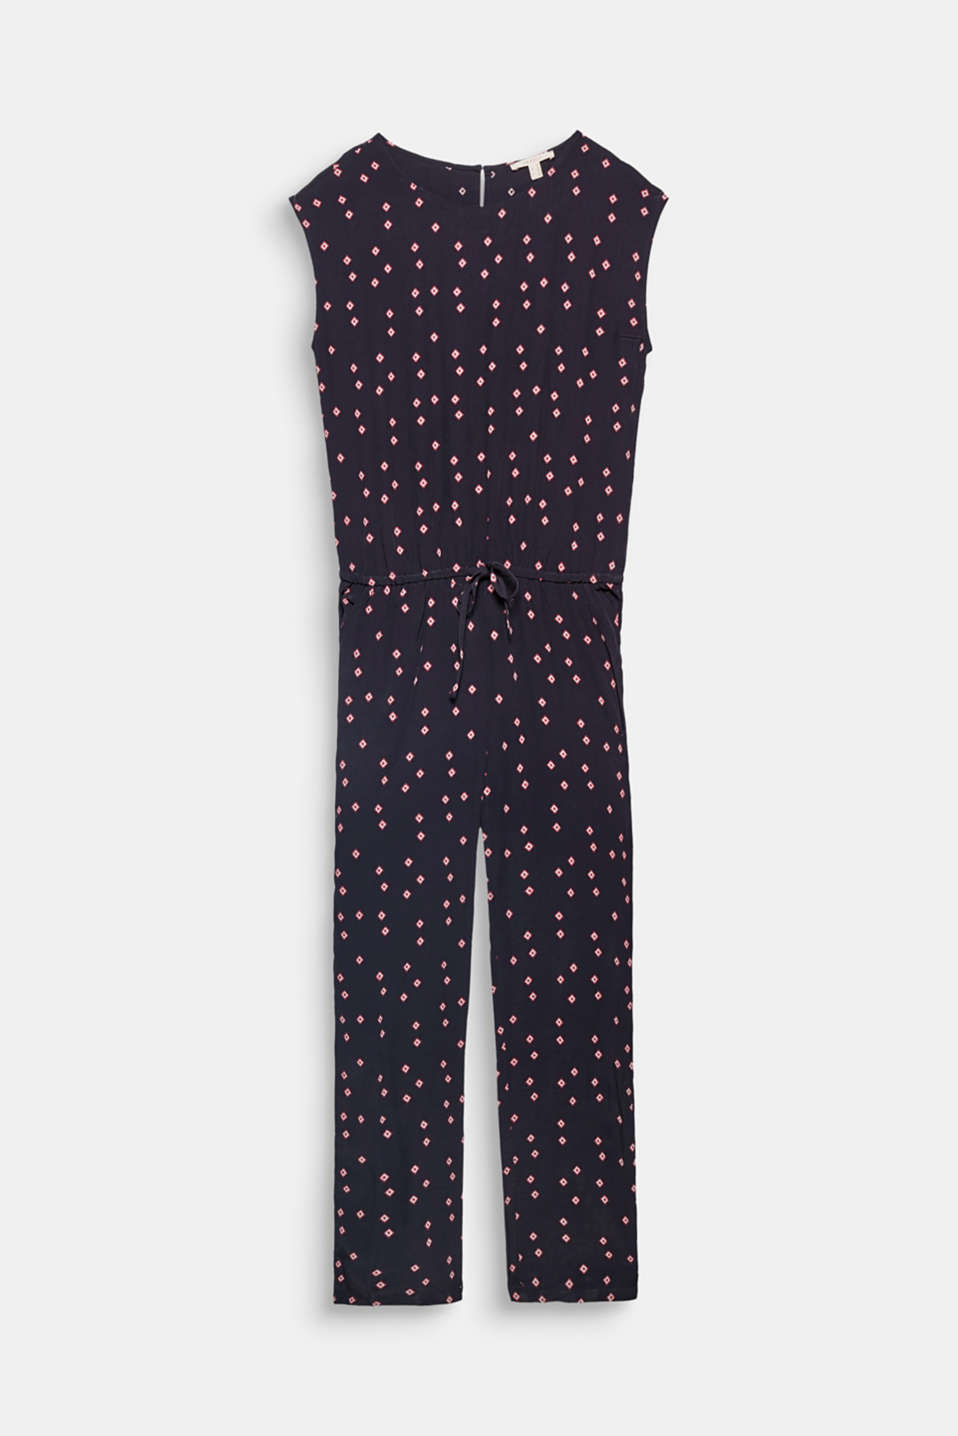 This jumpsuit in flowing fabric with a mini print and drawstring waist is lightweight, casual and comfy!